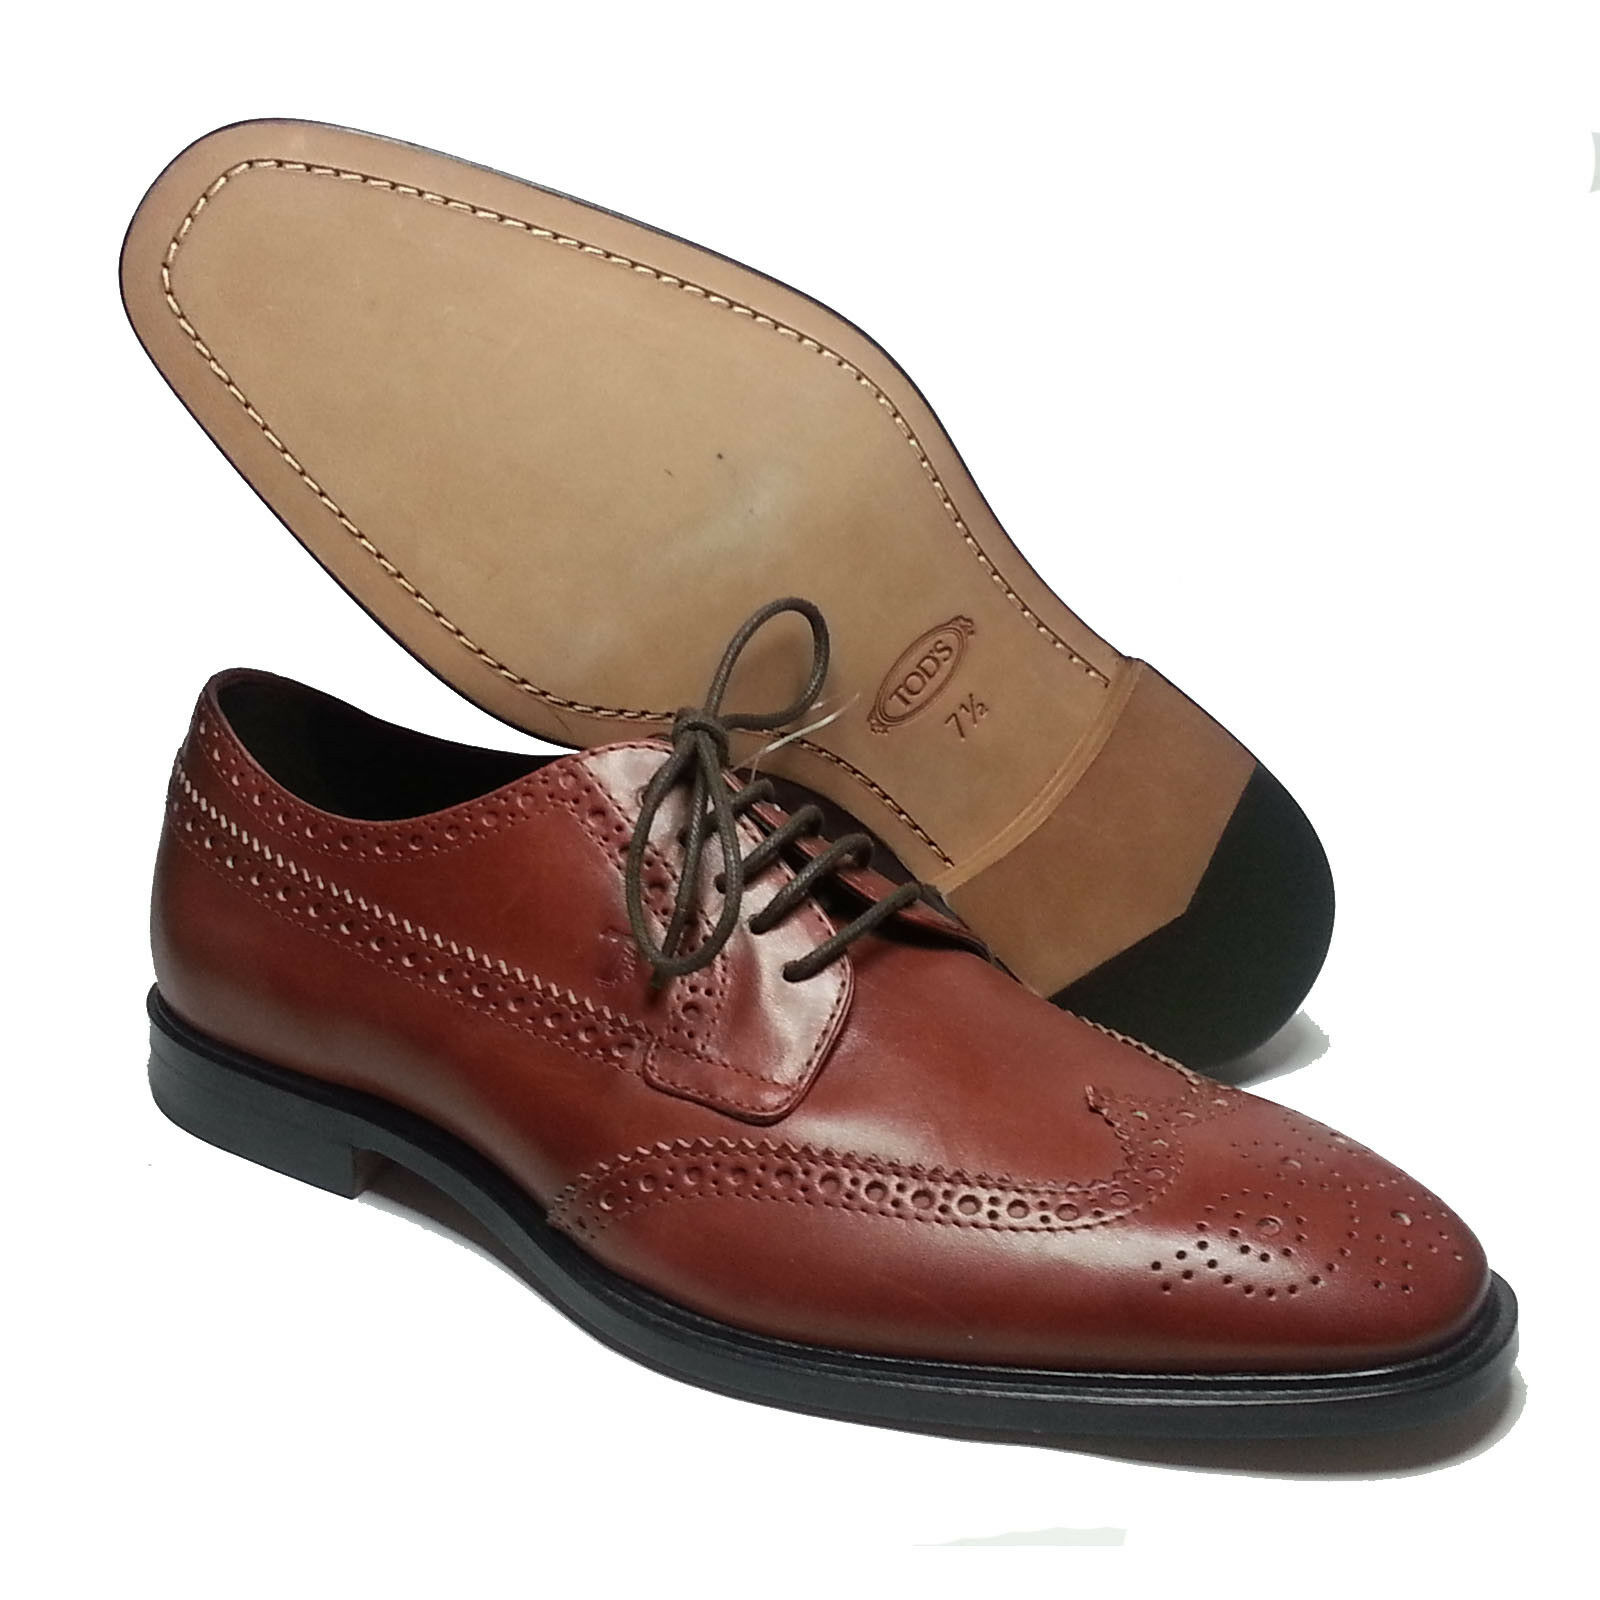 TOD'S Uomo Wingtip Brogue Brown Derby Shoes Size 8.5 Made in Italy